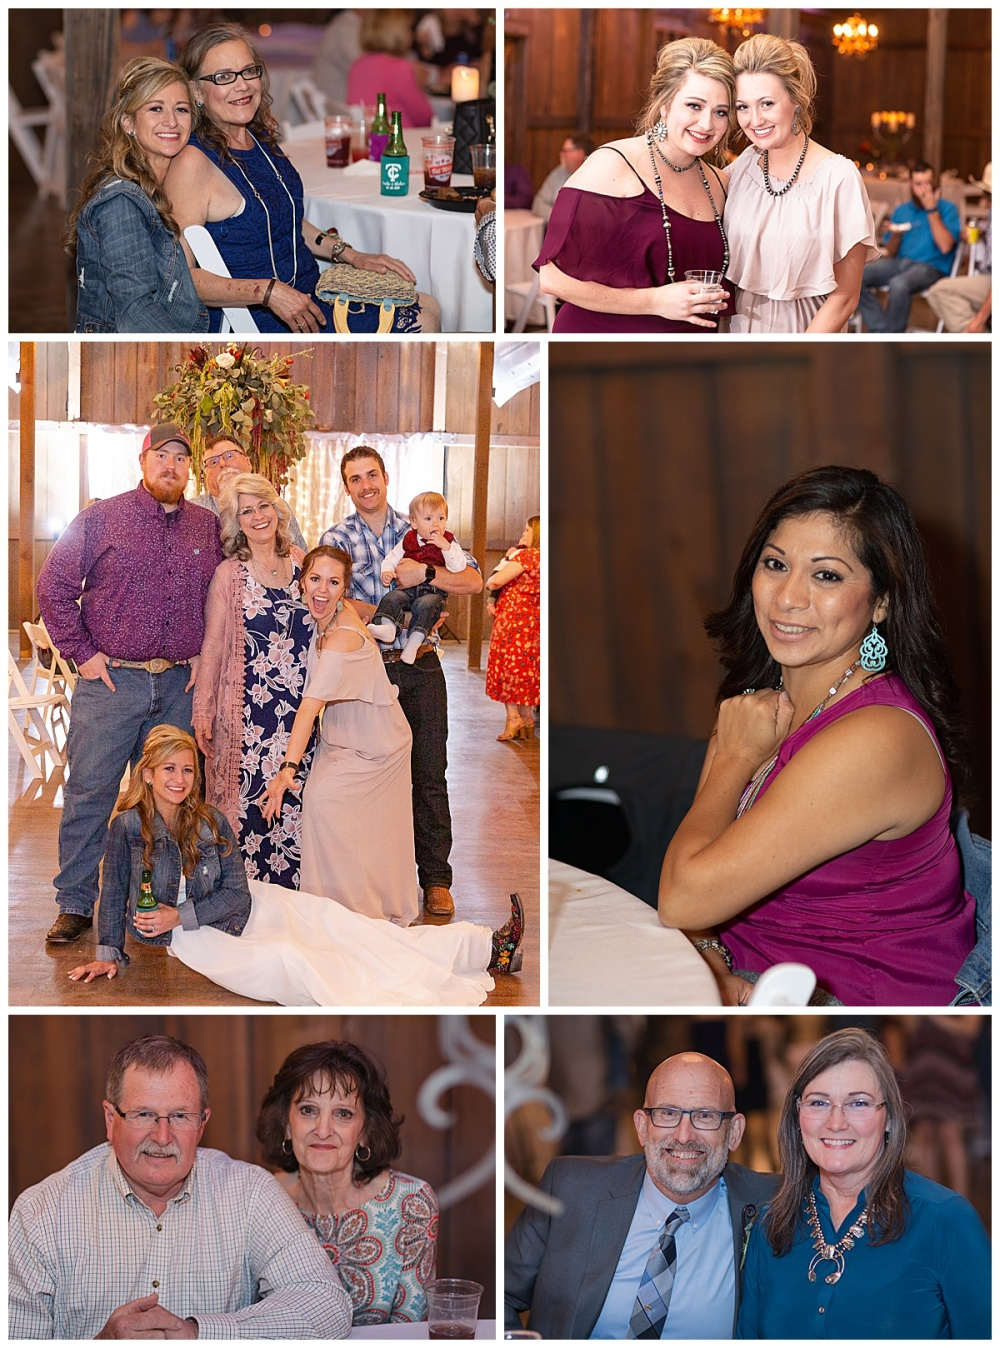 Eagle-Dancer-Ranch-Boerne-Texas-Wedding-Party-Barn-Carly-Barton-Photography_0056.jpg